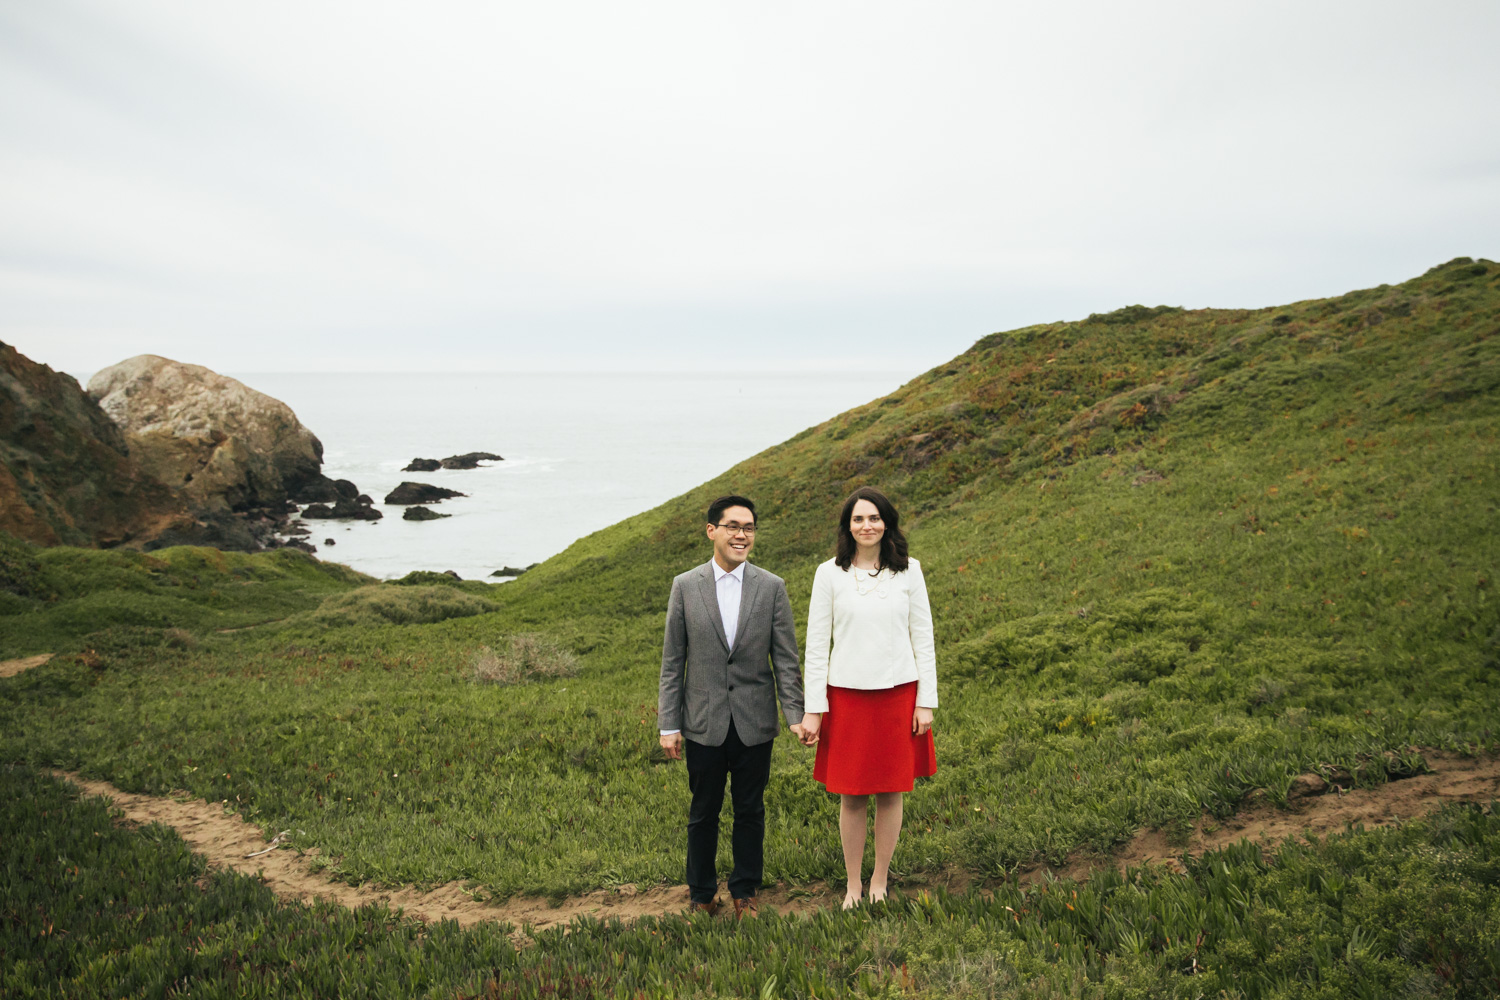 marin-headlands-engagement-elopement-photographer-15.jpg